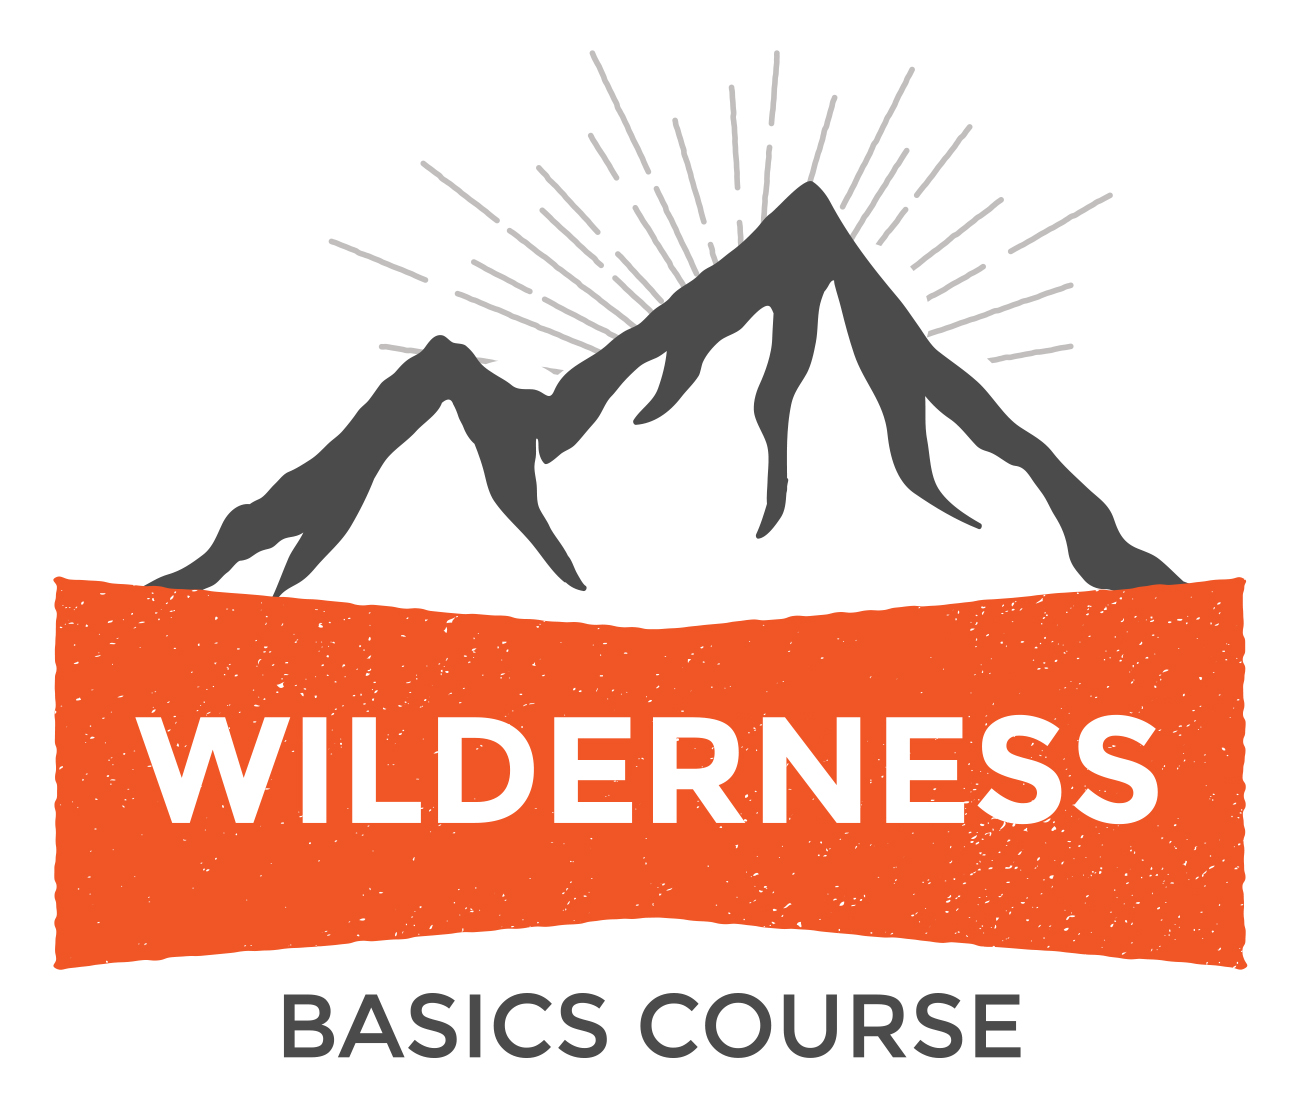 Wilderness Basics Course